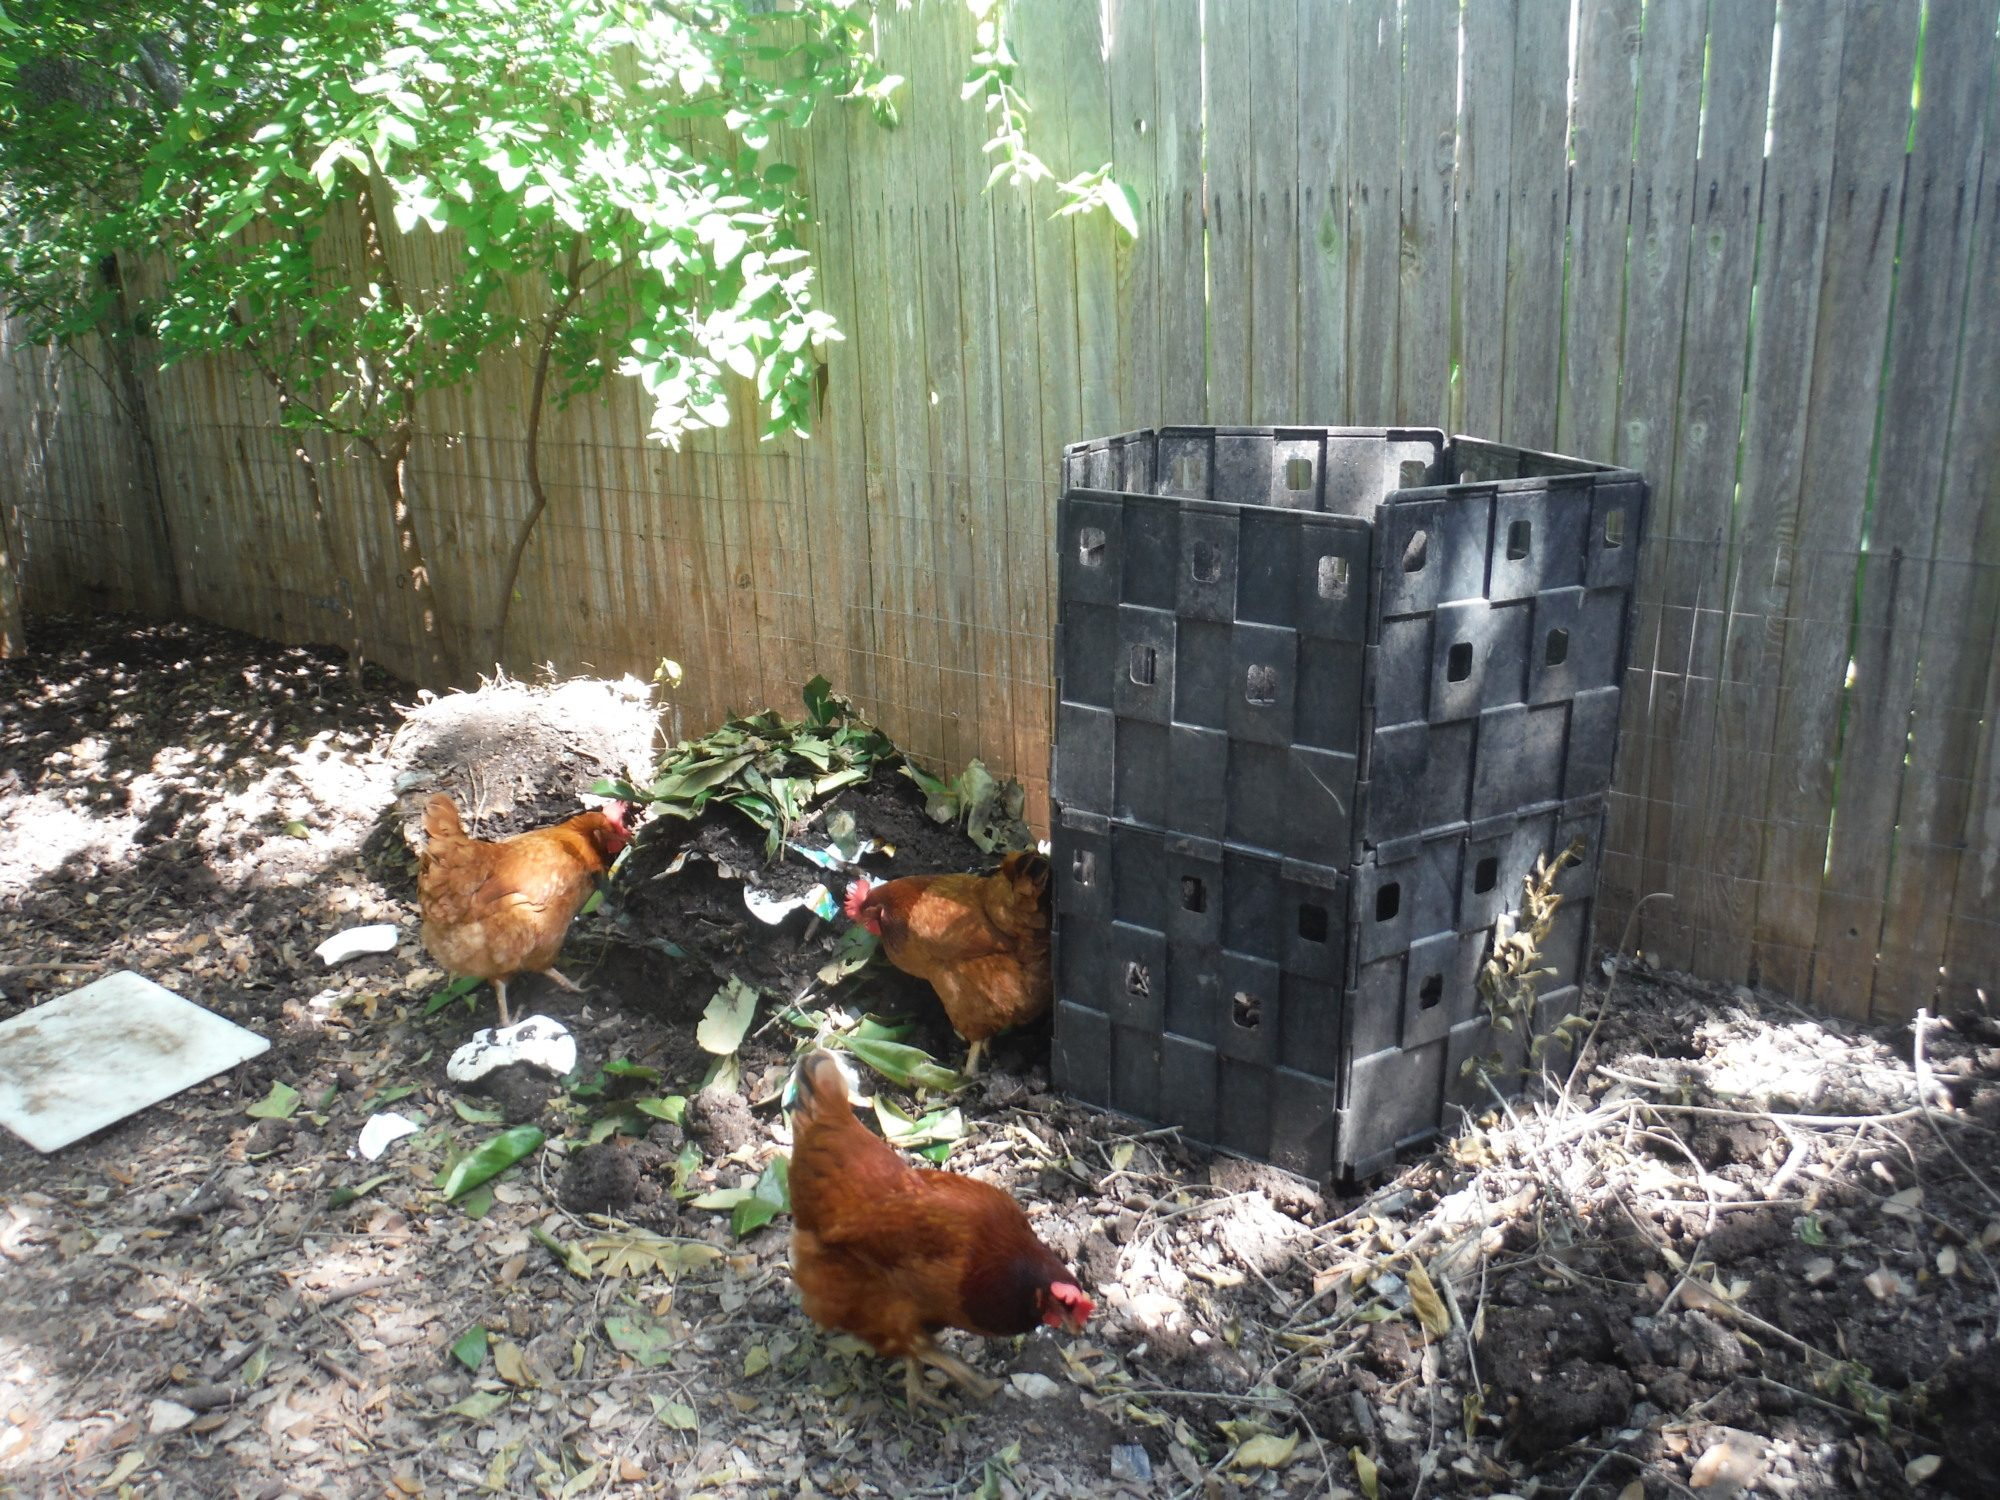 composting u0026 granulated fertilizer question backyard chickens